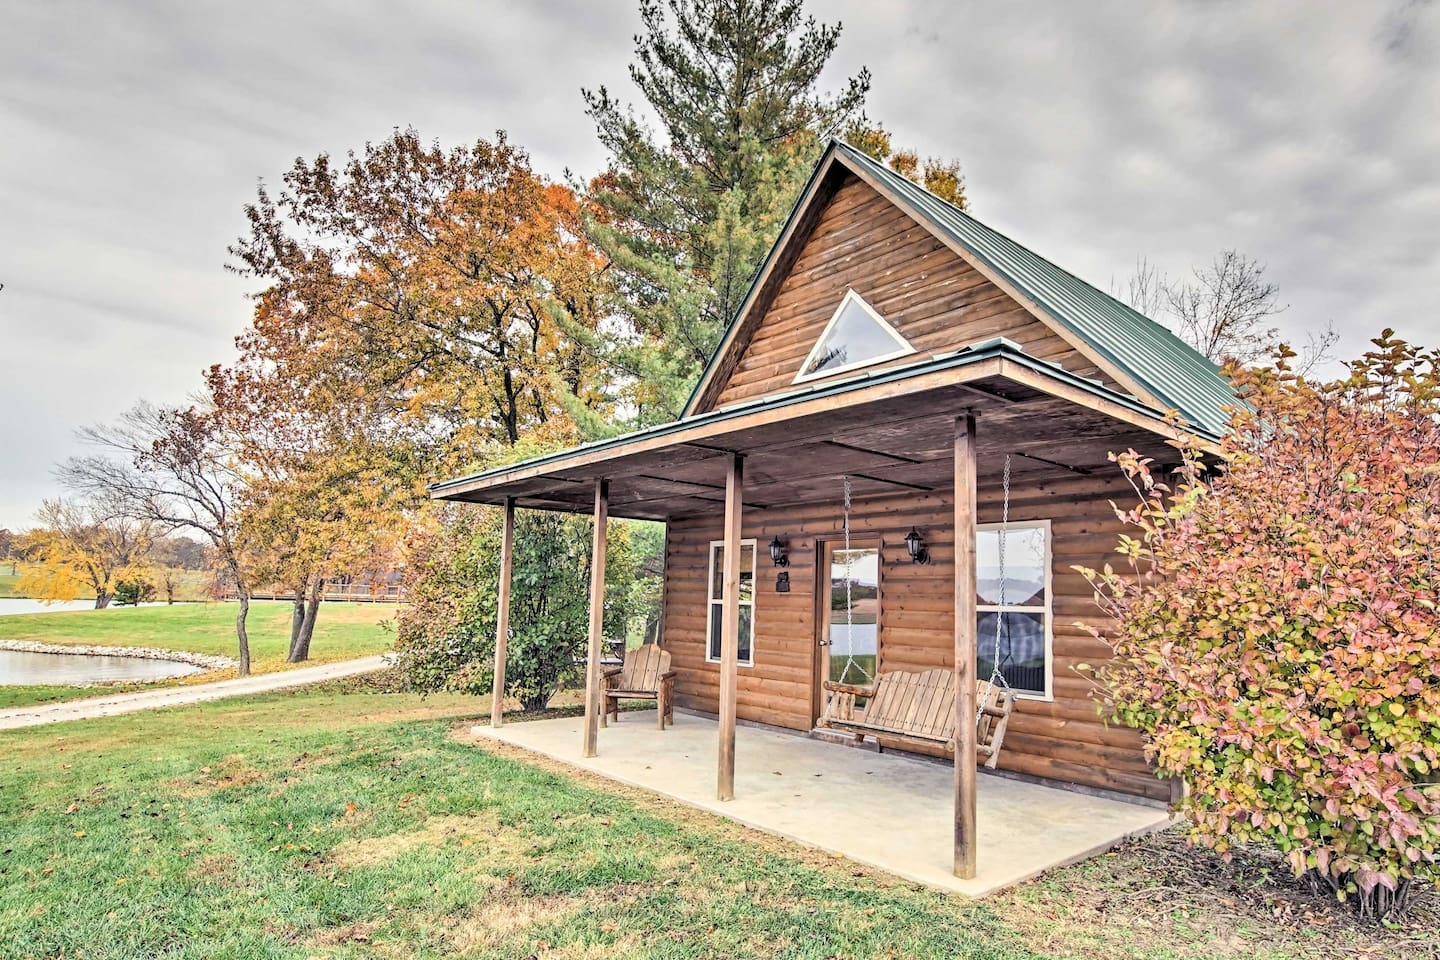 'Peaceful Potters Cabin'  is a vacation rental cabin at Cedar Creek Lodge.